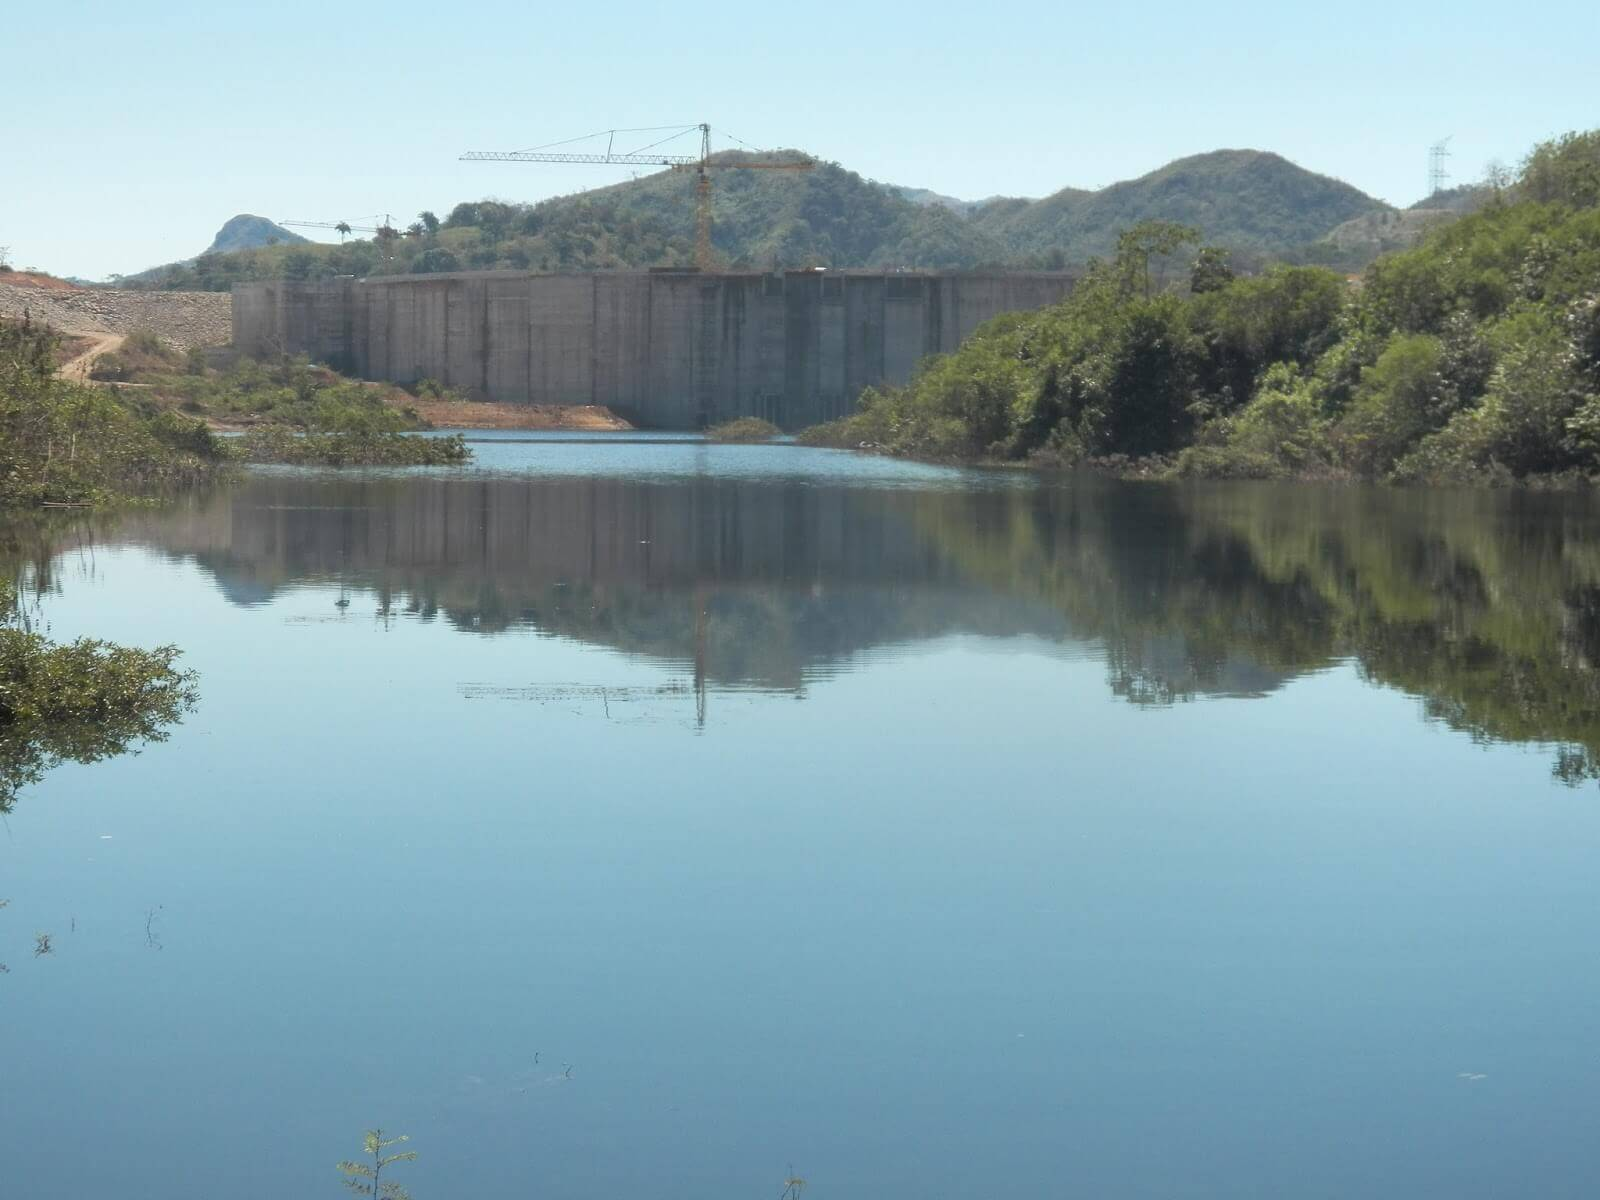 , Flooding begins on UN approved hydro dam as indigenous defenders are forcefully removed